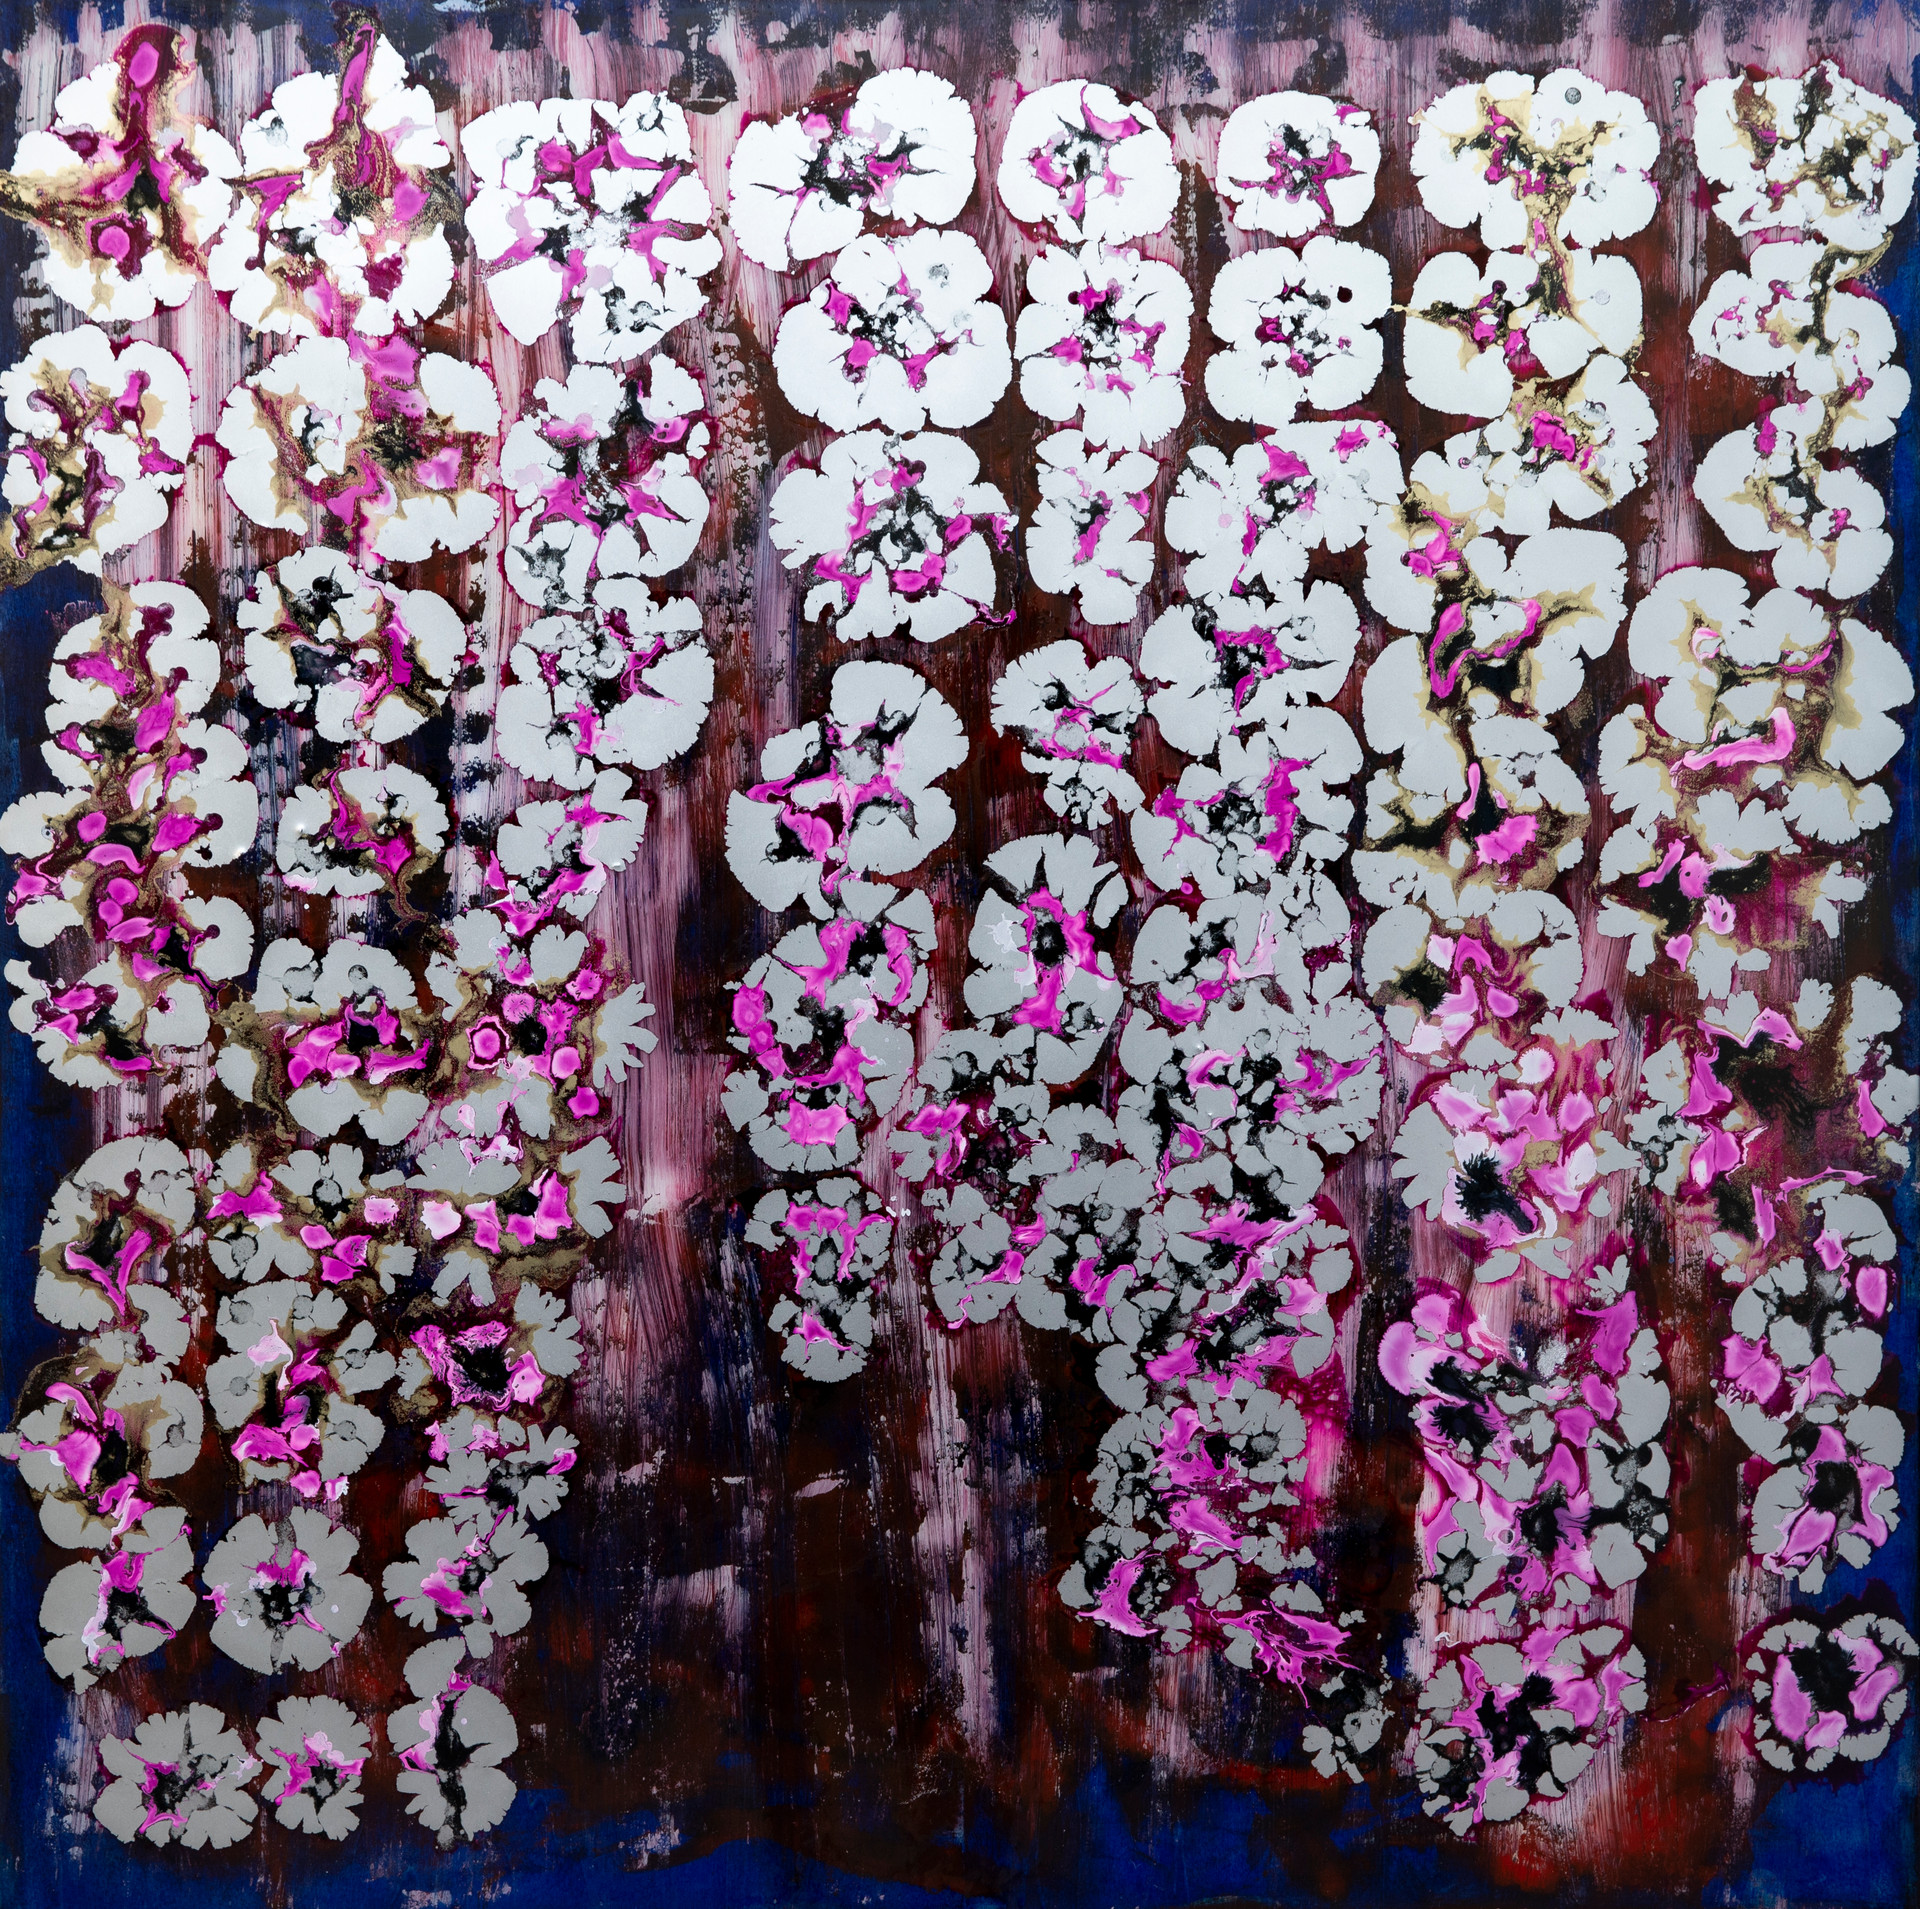 2020, nº 16 - mixed media on wood - 100 cm x 100 cm - 2020